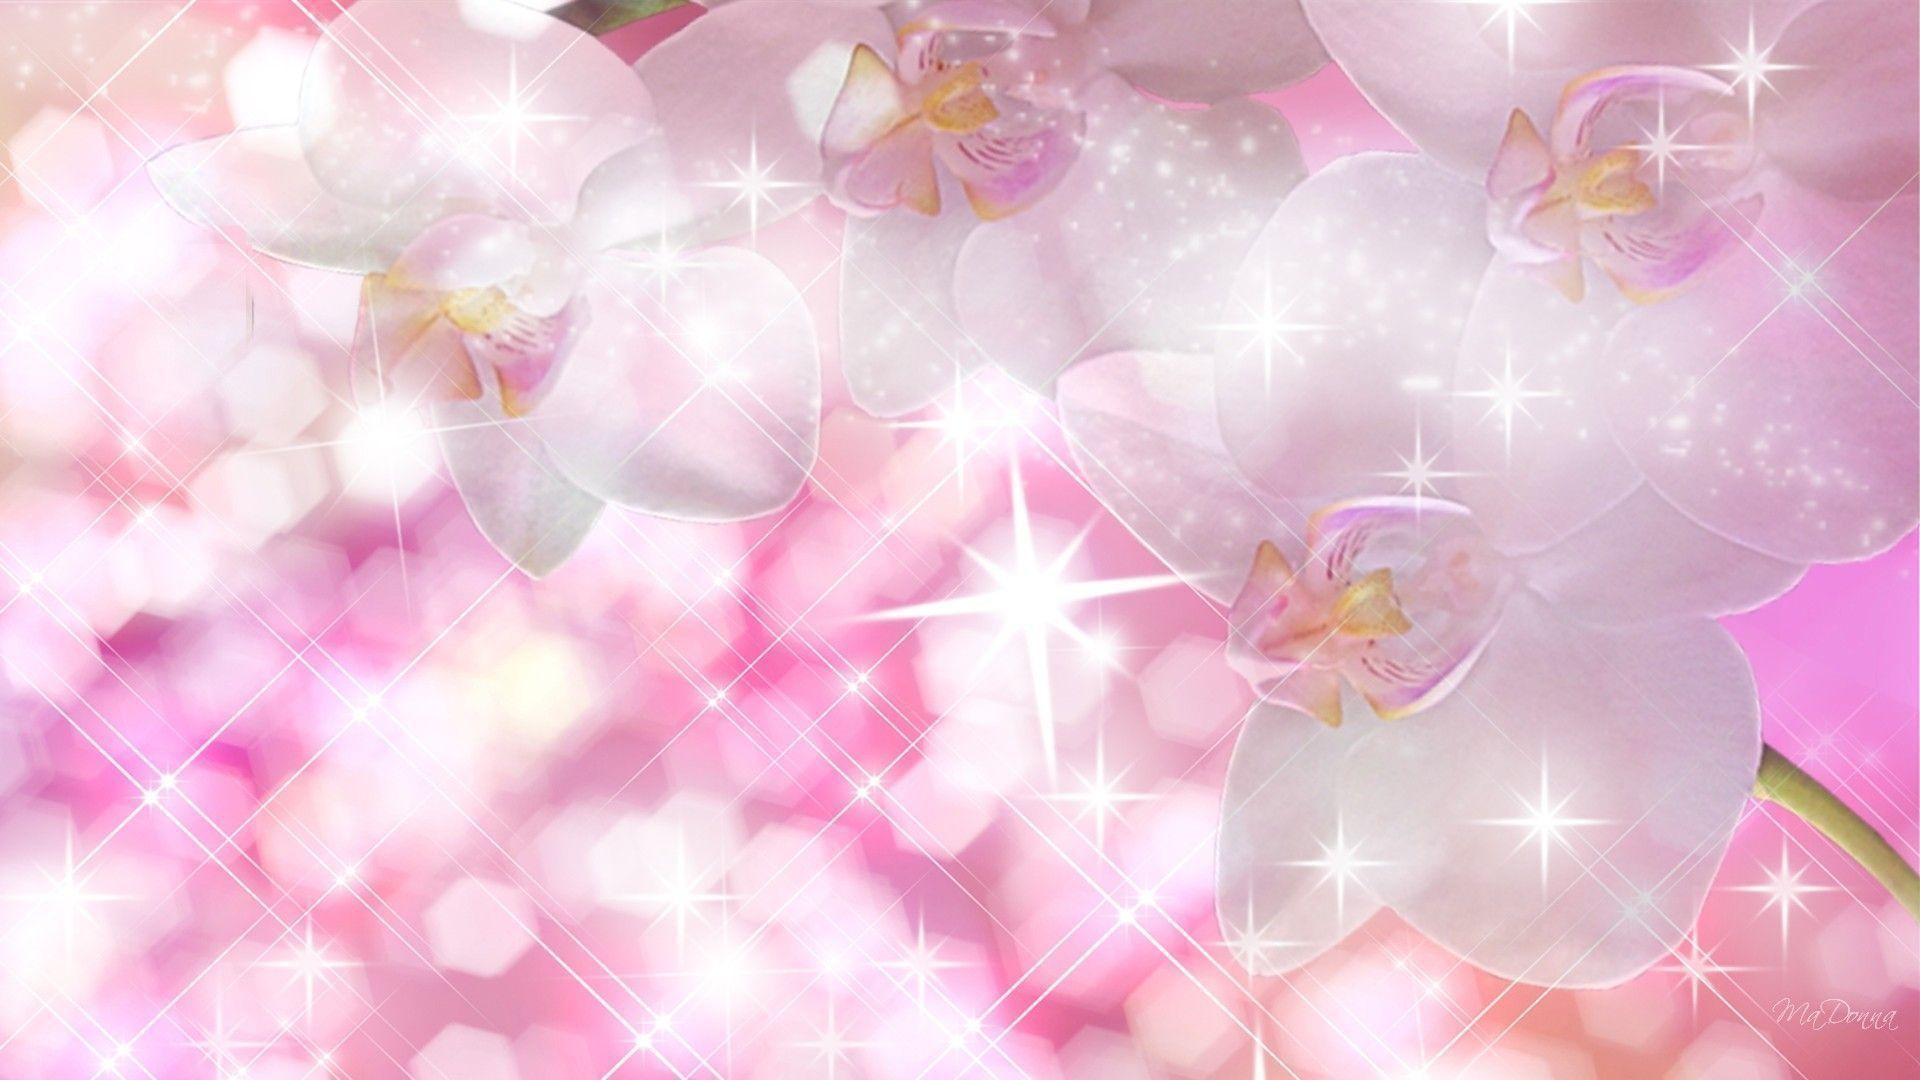 1920x1080 Wallpaper: Wallpapers For Gt Pink Sparkle Wallpaper, White Sparkle .